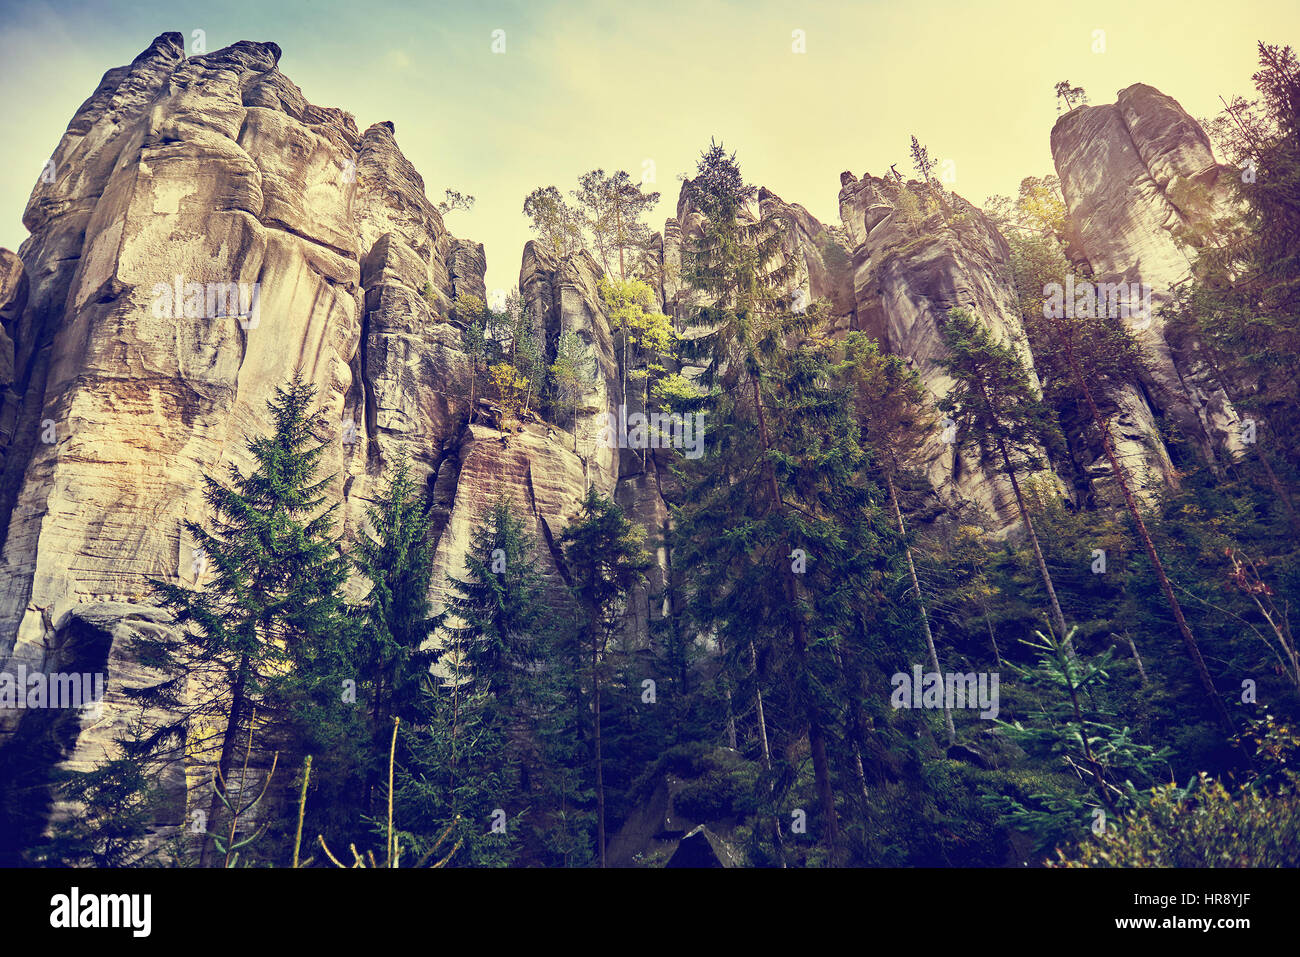 Fantastic view of the andstone Pillars. Teplice-Adrspach Rock Town. Czech Republic. Artistic picture. Beauty world. - Stock Image